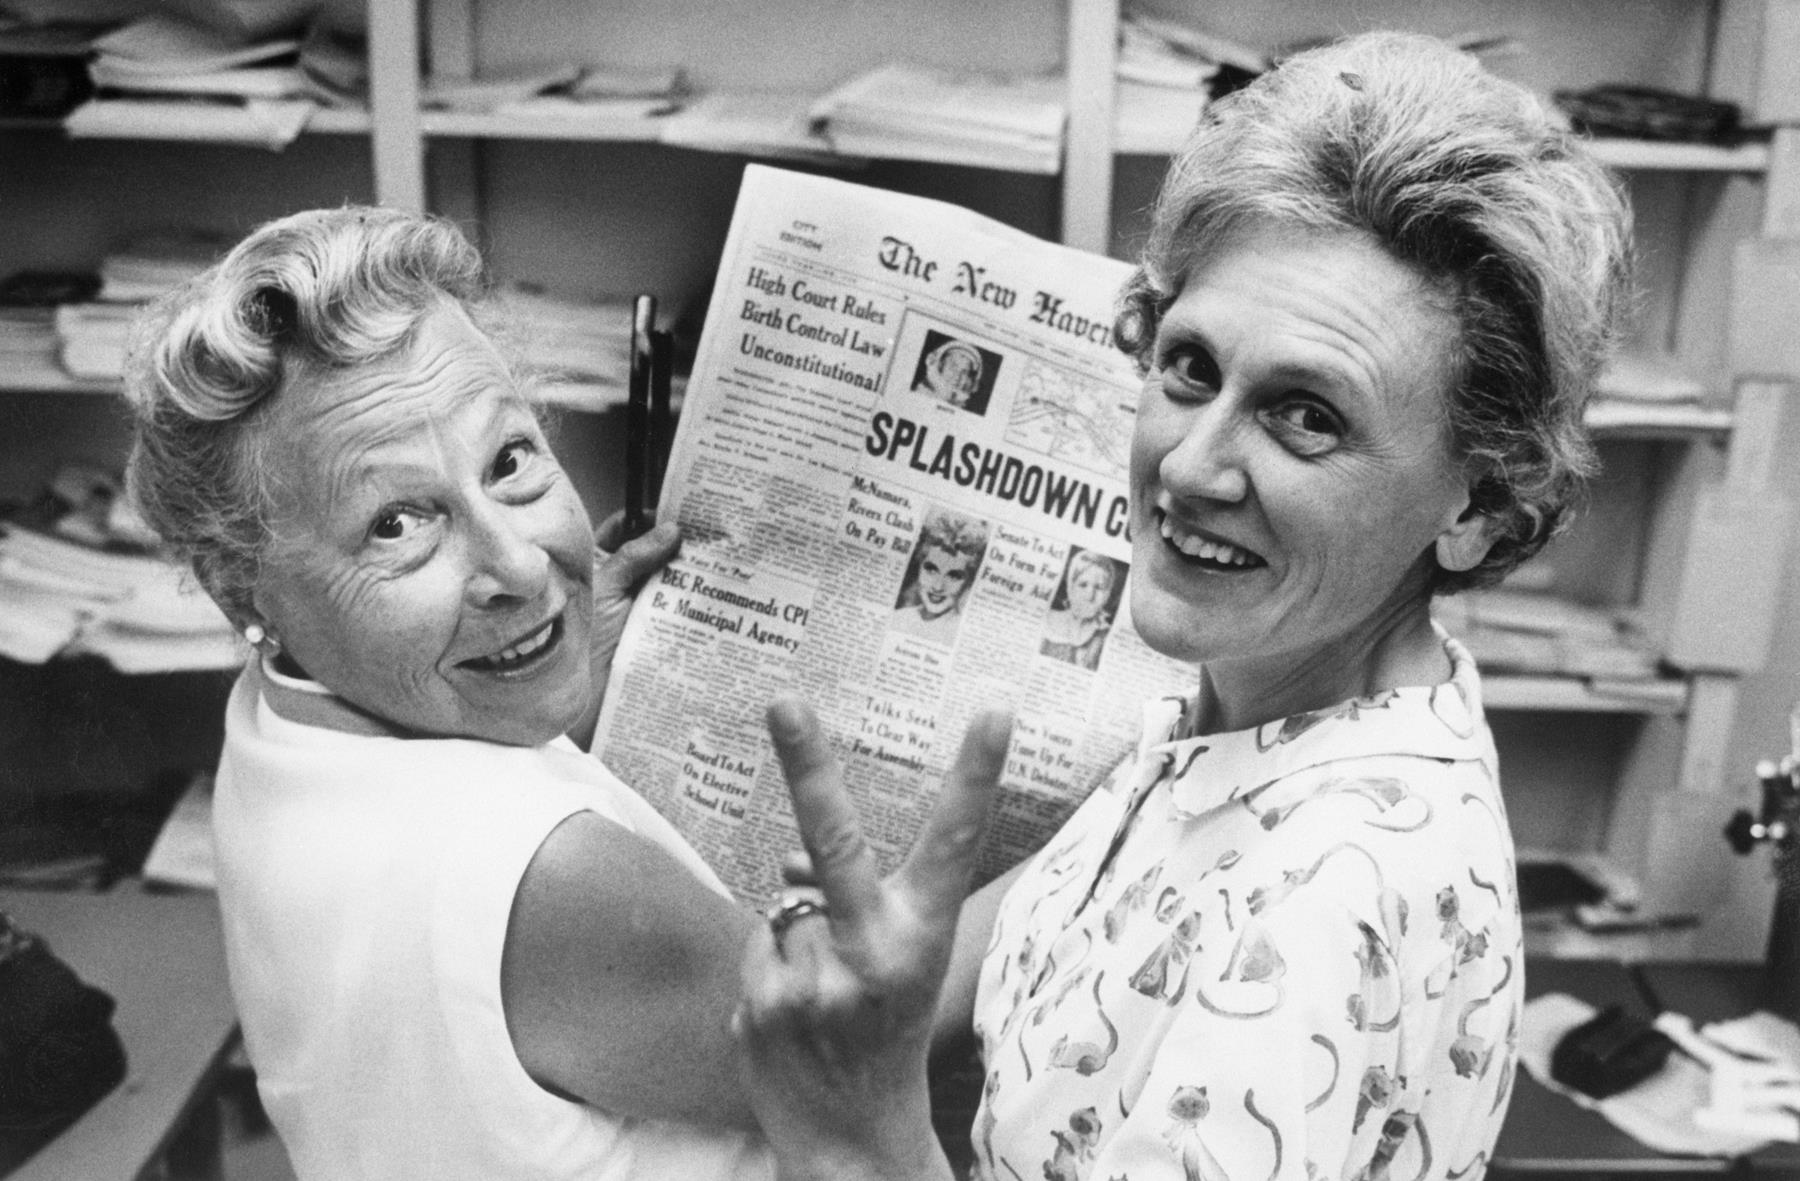 On June 7, 1965, Estelle Griswold and Cornelia Jahncke of the Planned Parenthood League of Connecticut, celebrated a decision by the U.S. Supreme Court that struck down the state's law banning the use of birth control.